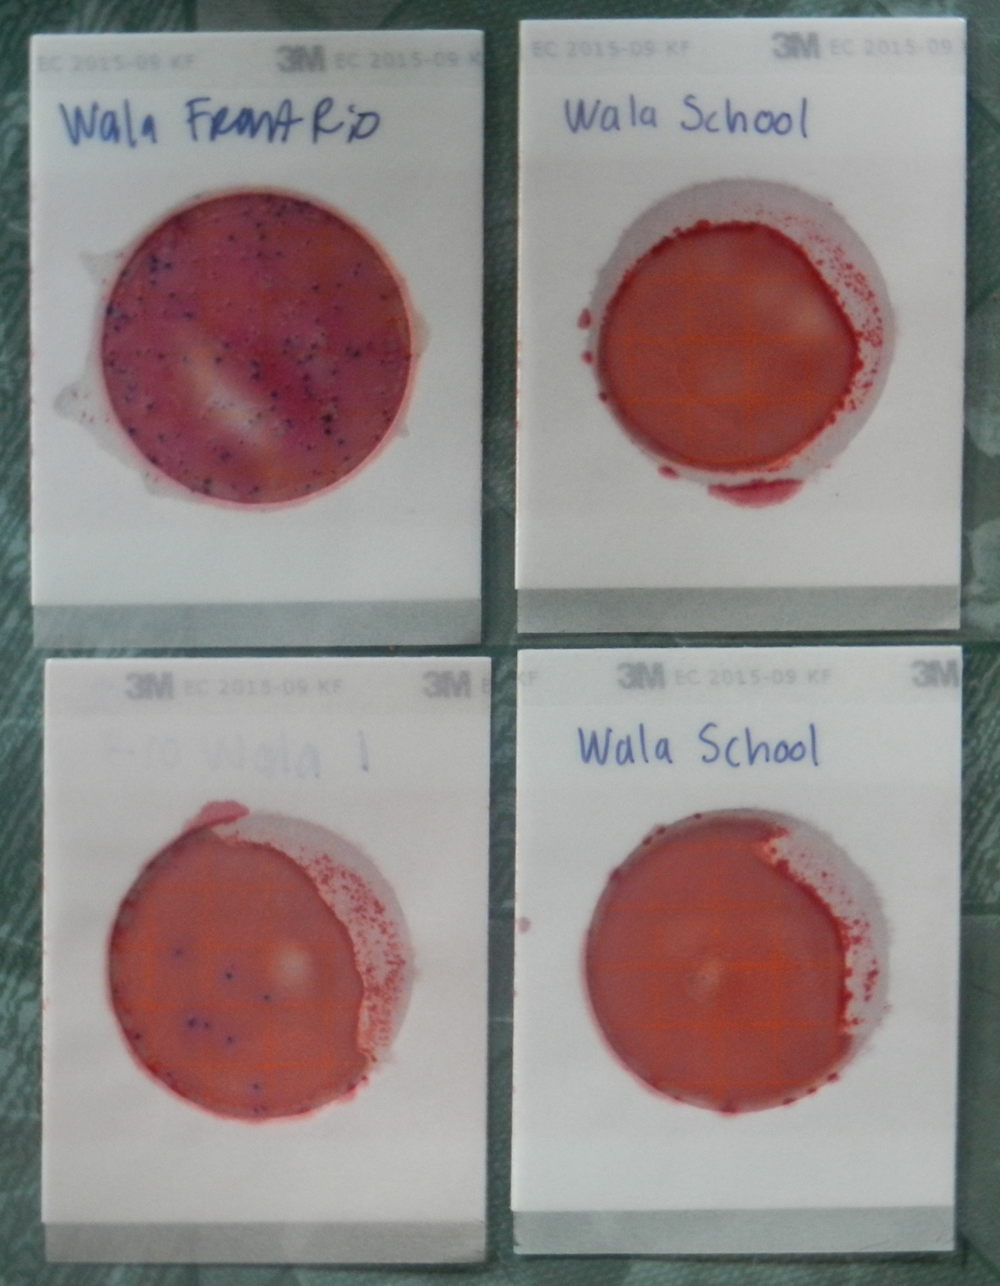 Water tests from Wala. All the dots are bacterial colonies from fecal contamination.